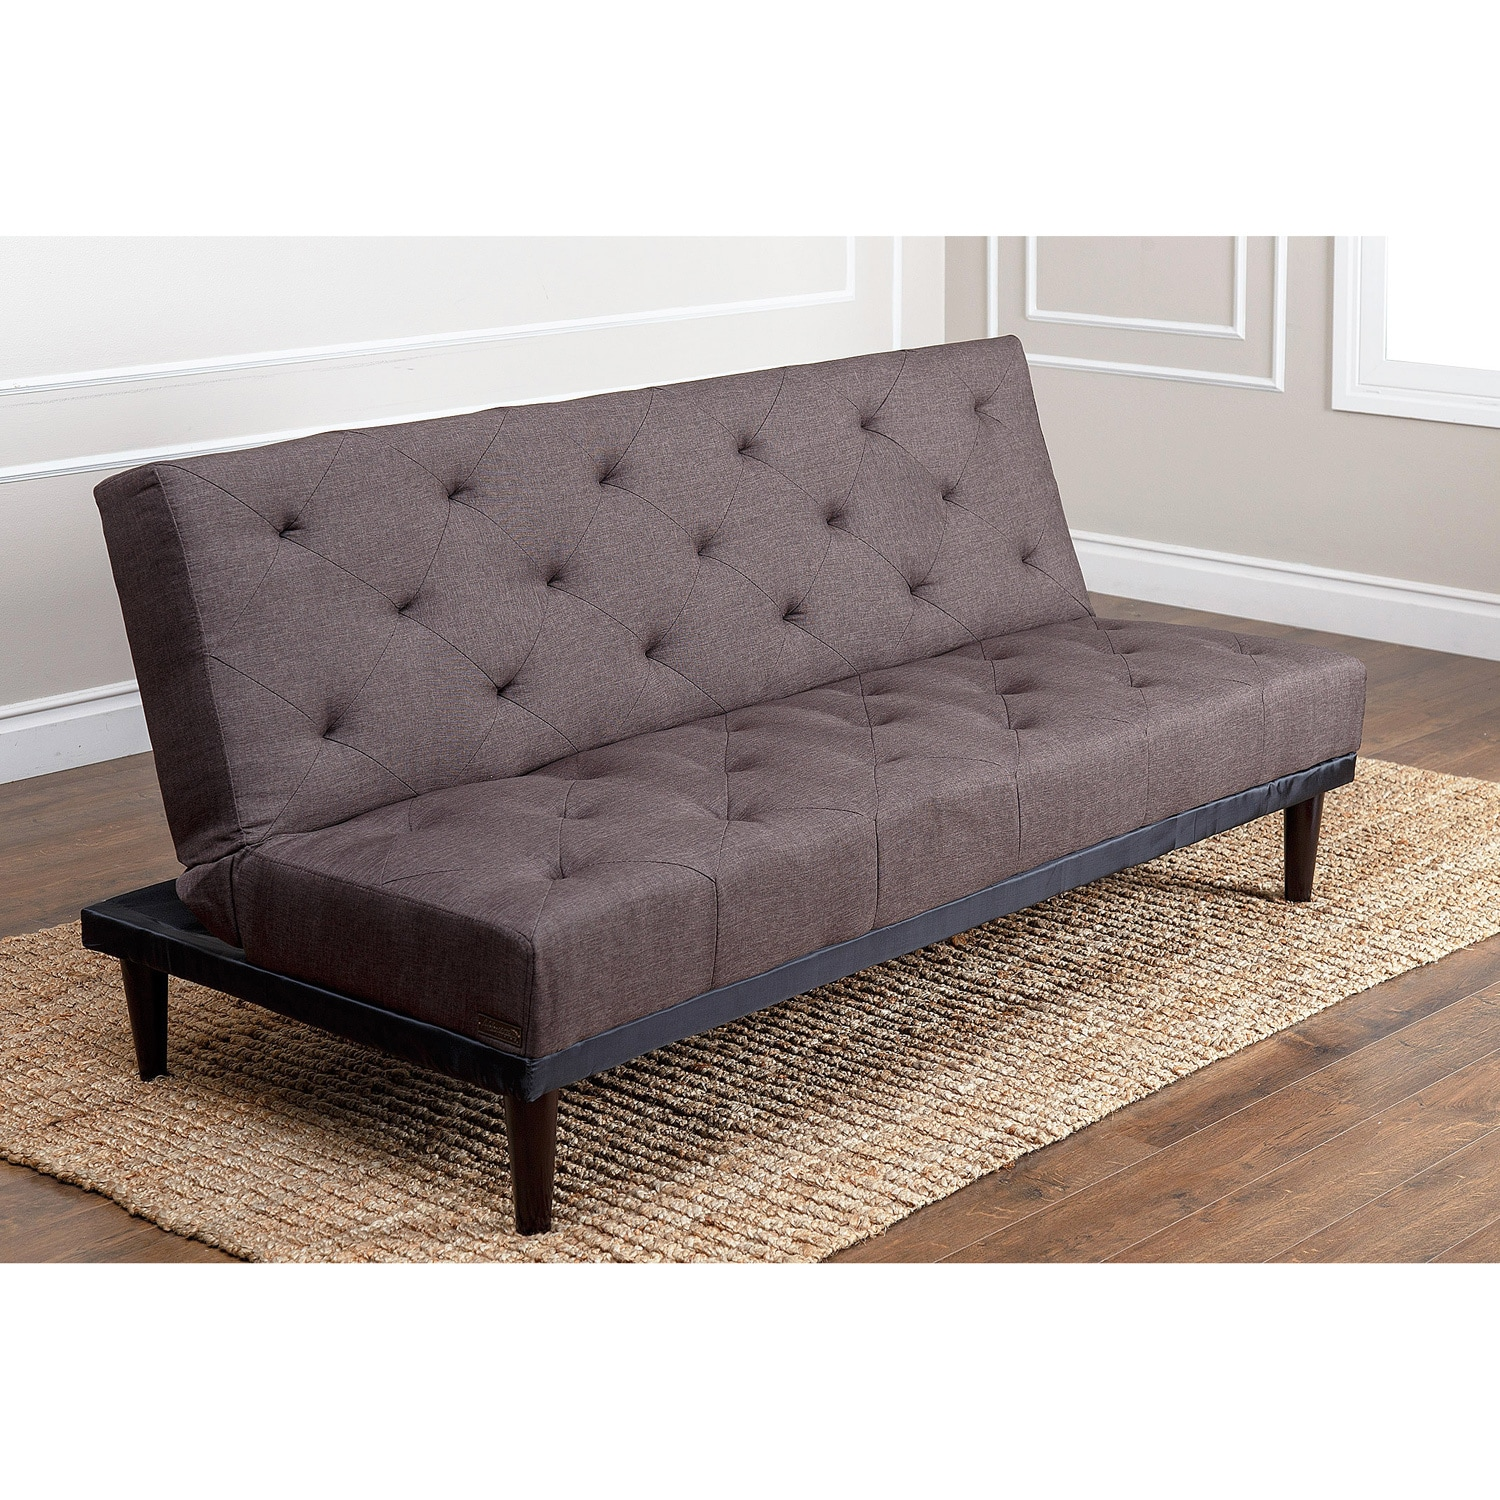 Fabric Futon Sofa Bed